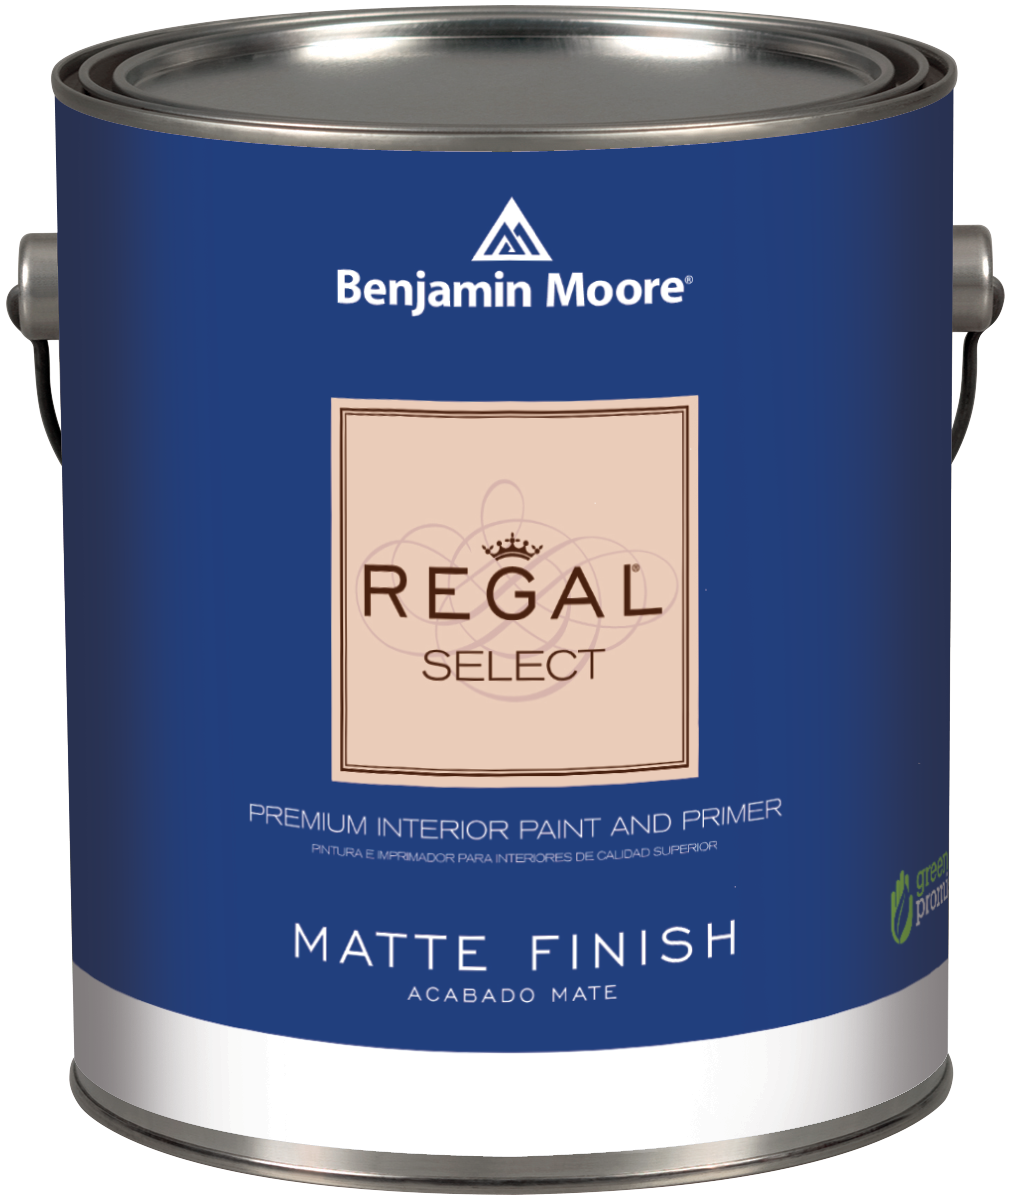 Benjamin Moore Regal Select Waterborne Interior Paint Thybony Paint Supplies Chicago 39 S Own